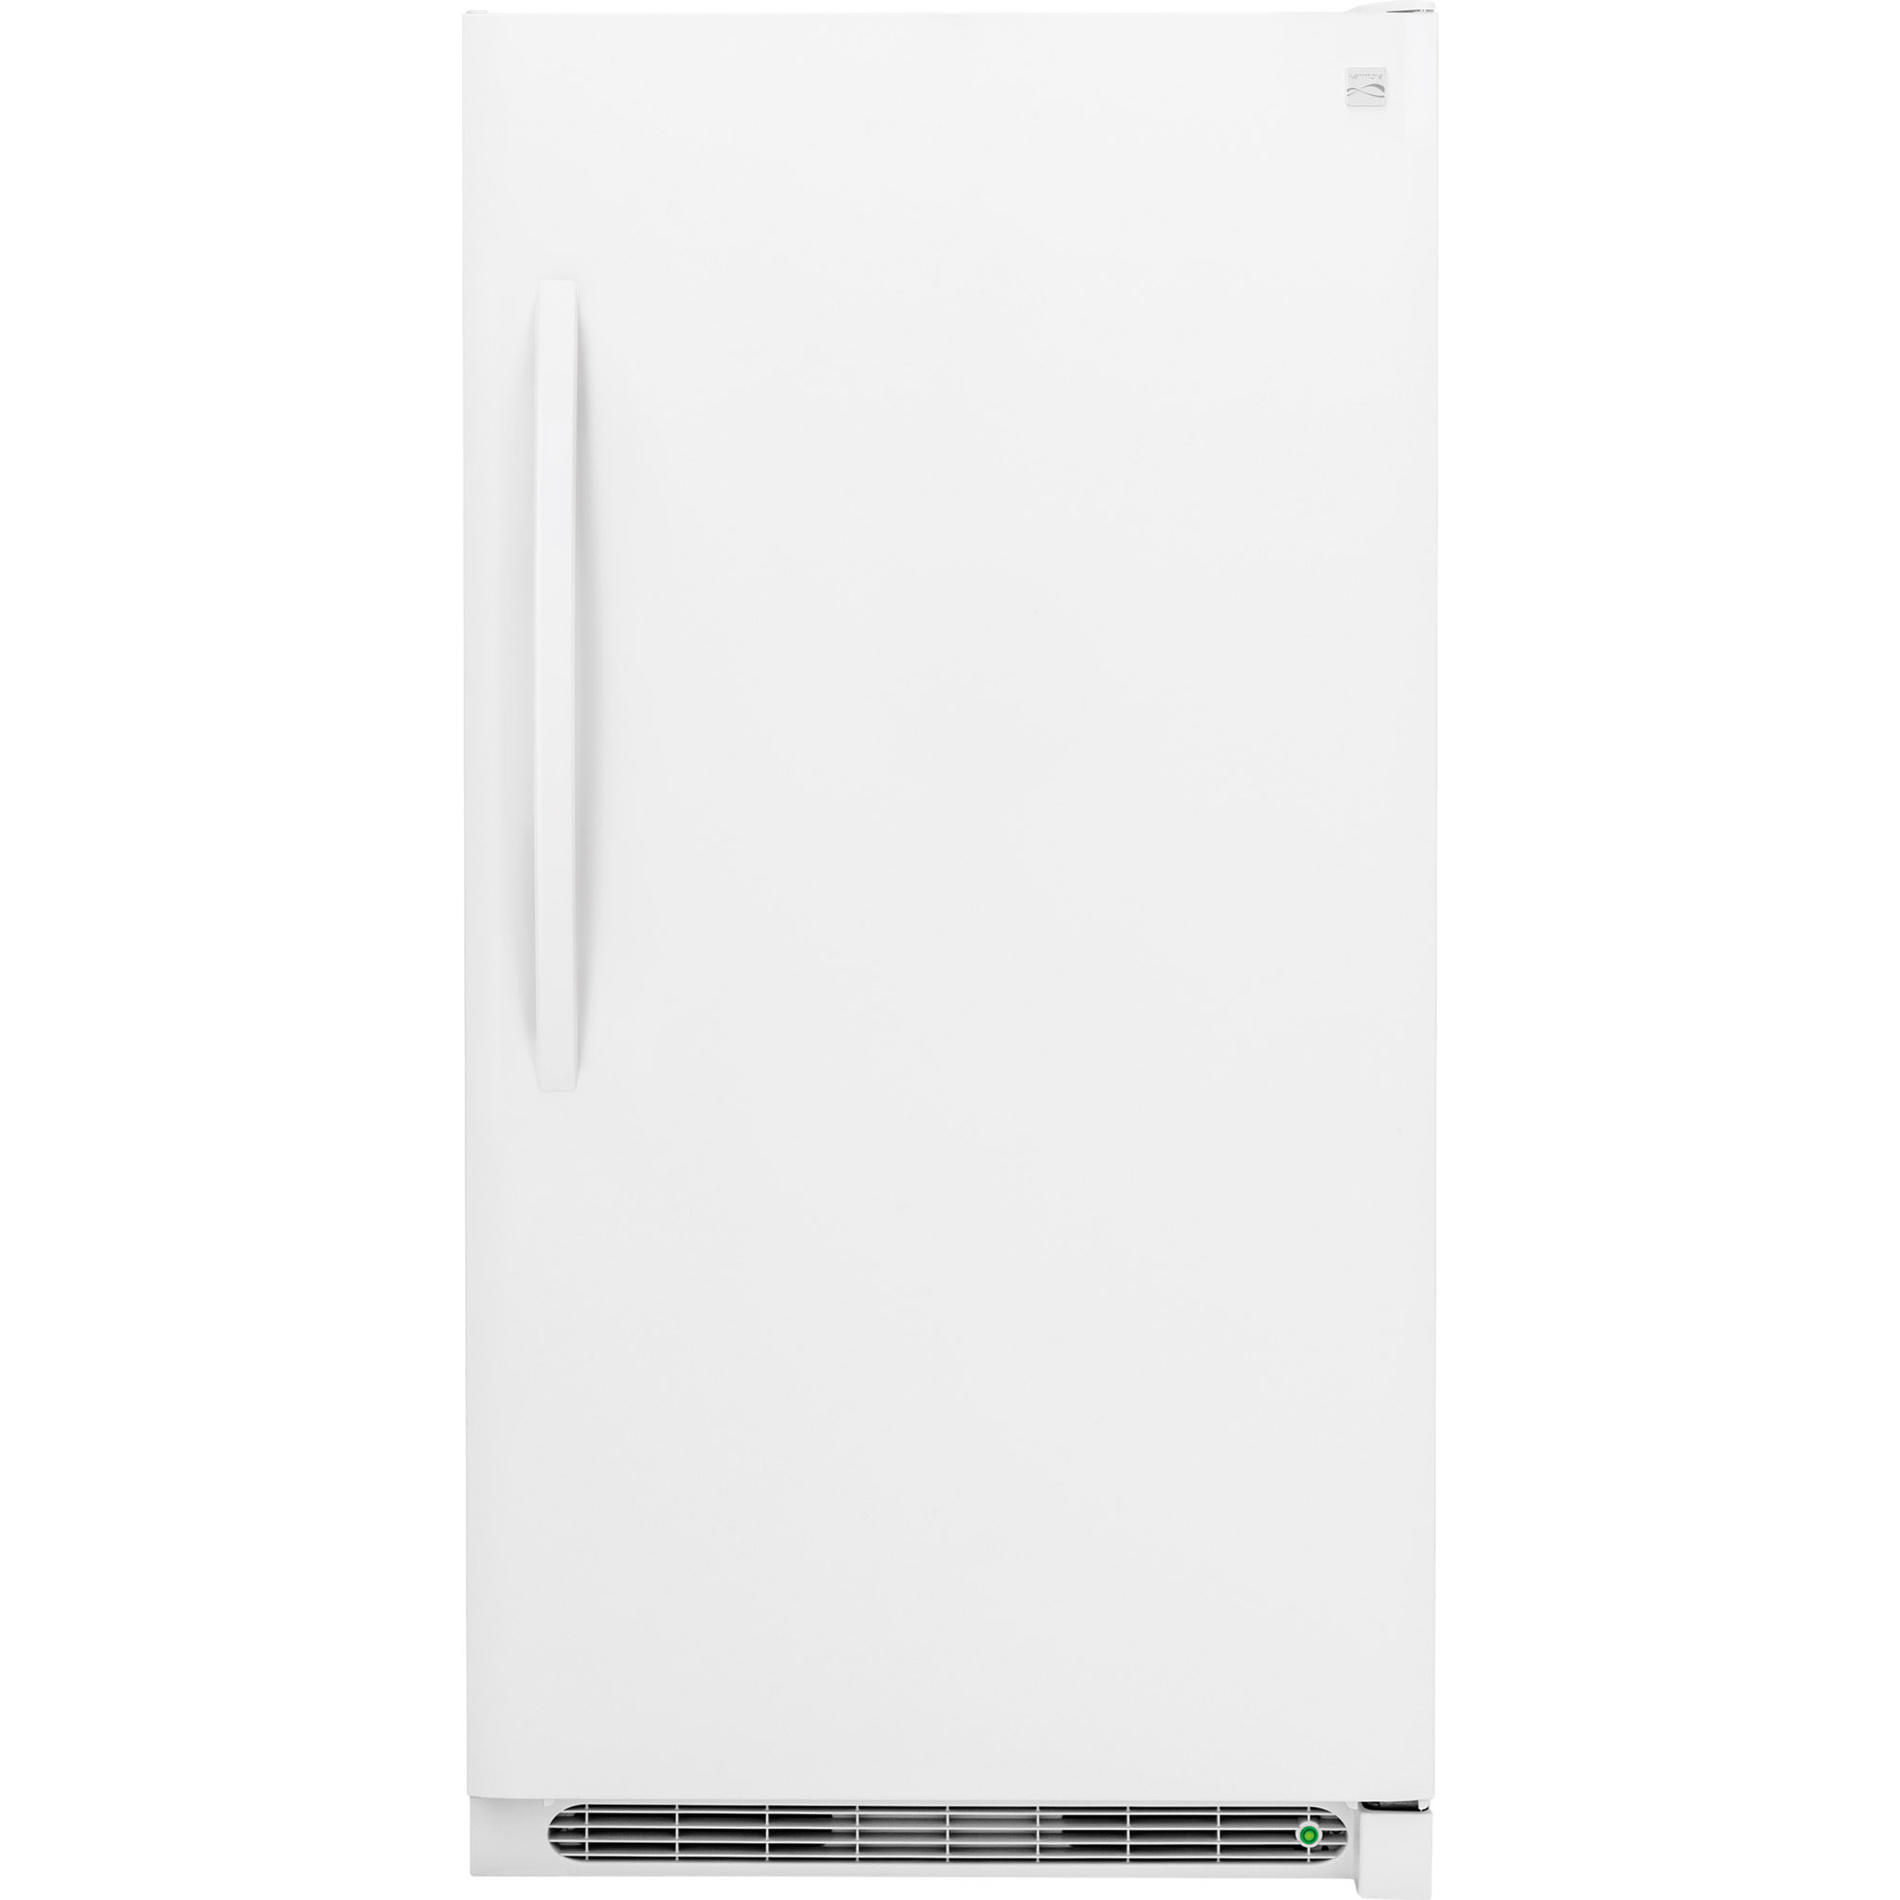 21042-20-9-cu-ft-Upright-Freezer-White